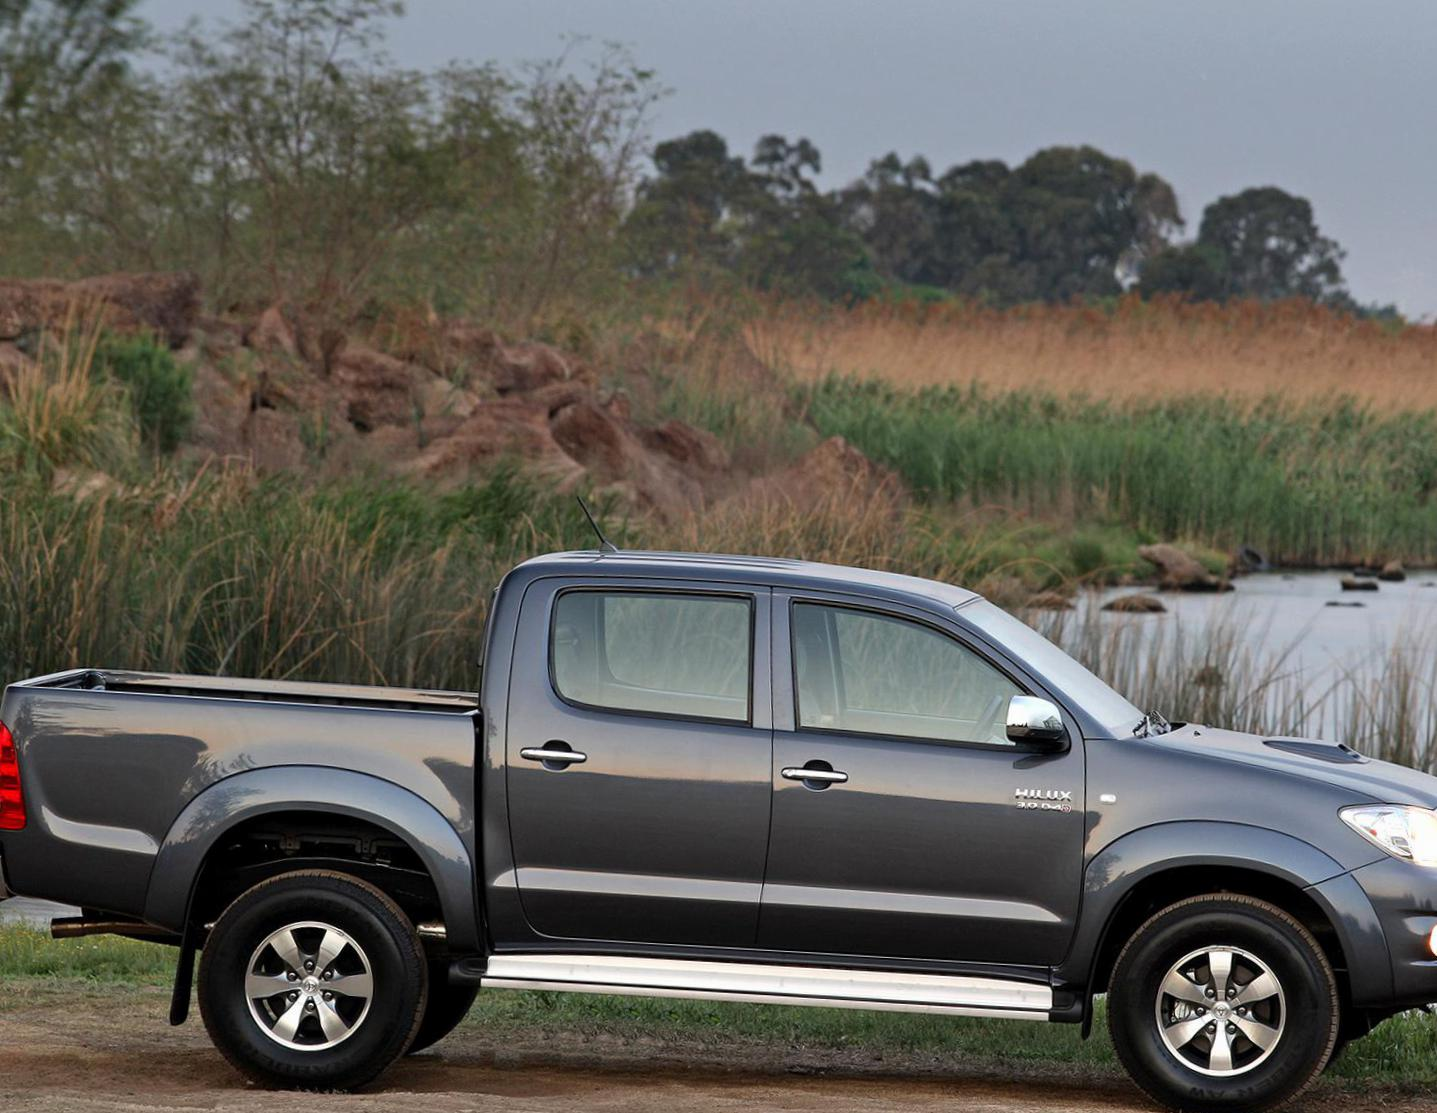 Hilux Double Cab Toyota Characteristics 2009